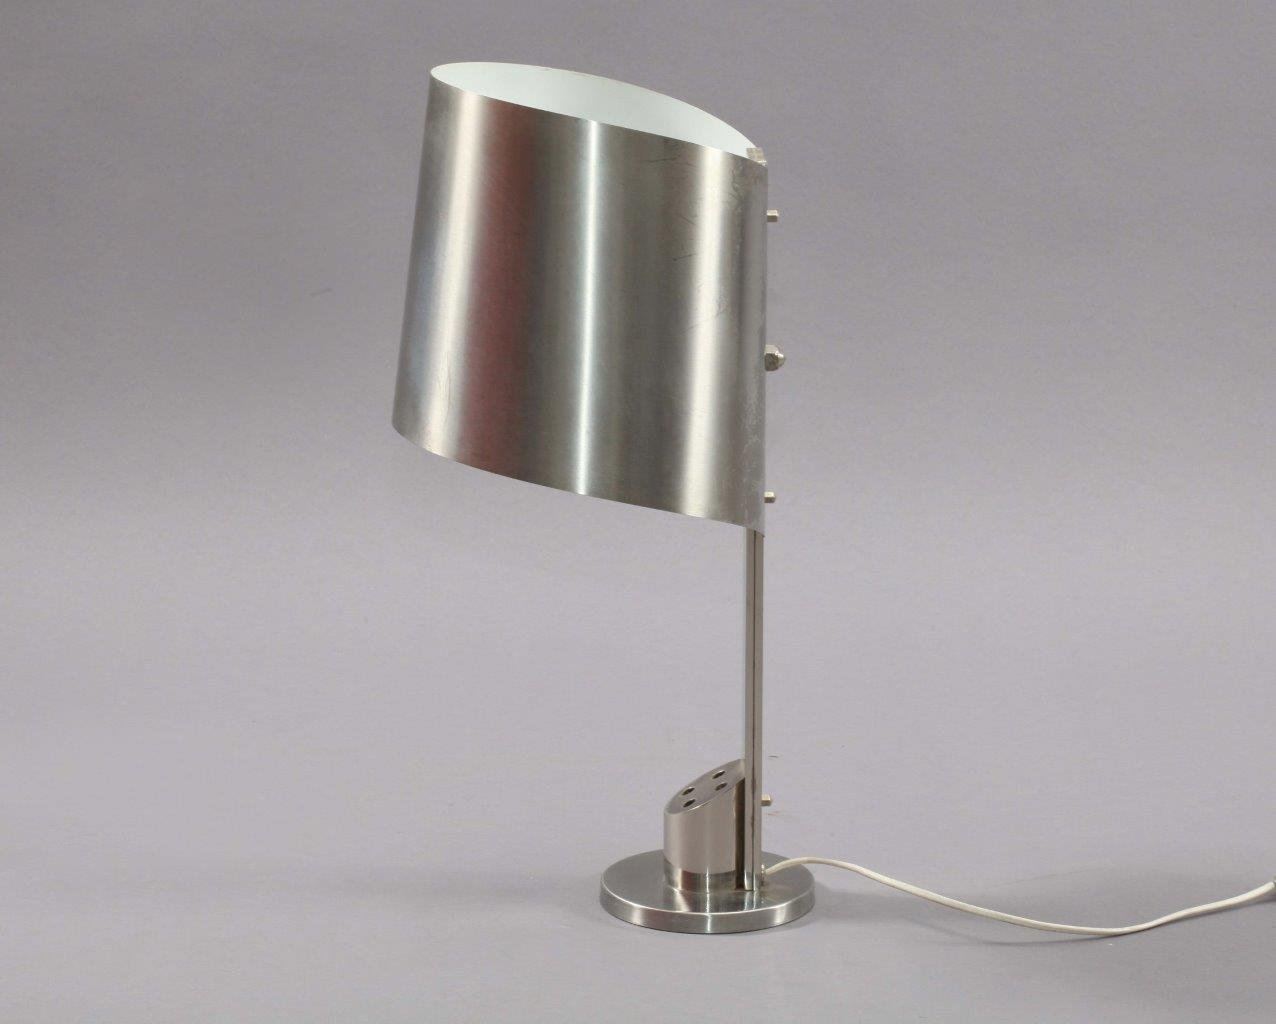 Stainless Steel Desk Lamp By Henri Mathieu 1970s For Sale